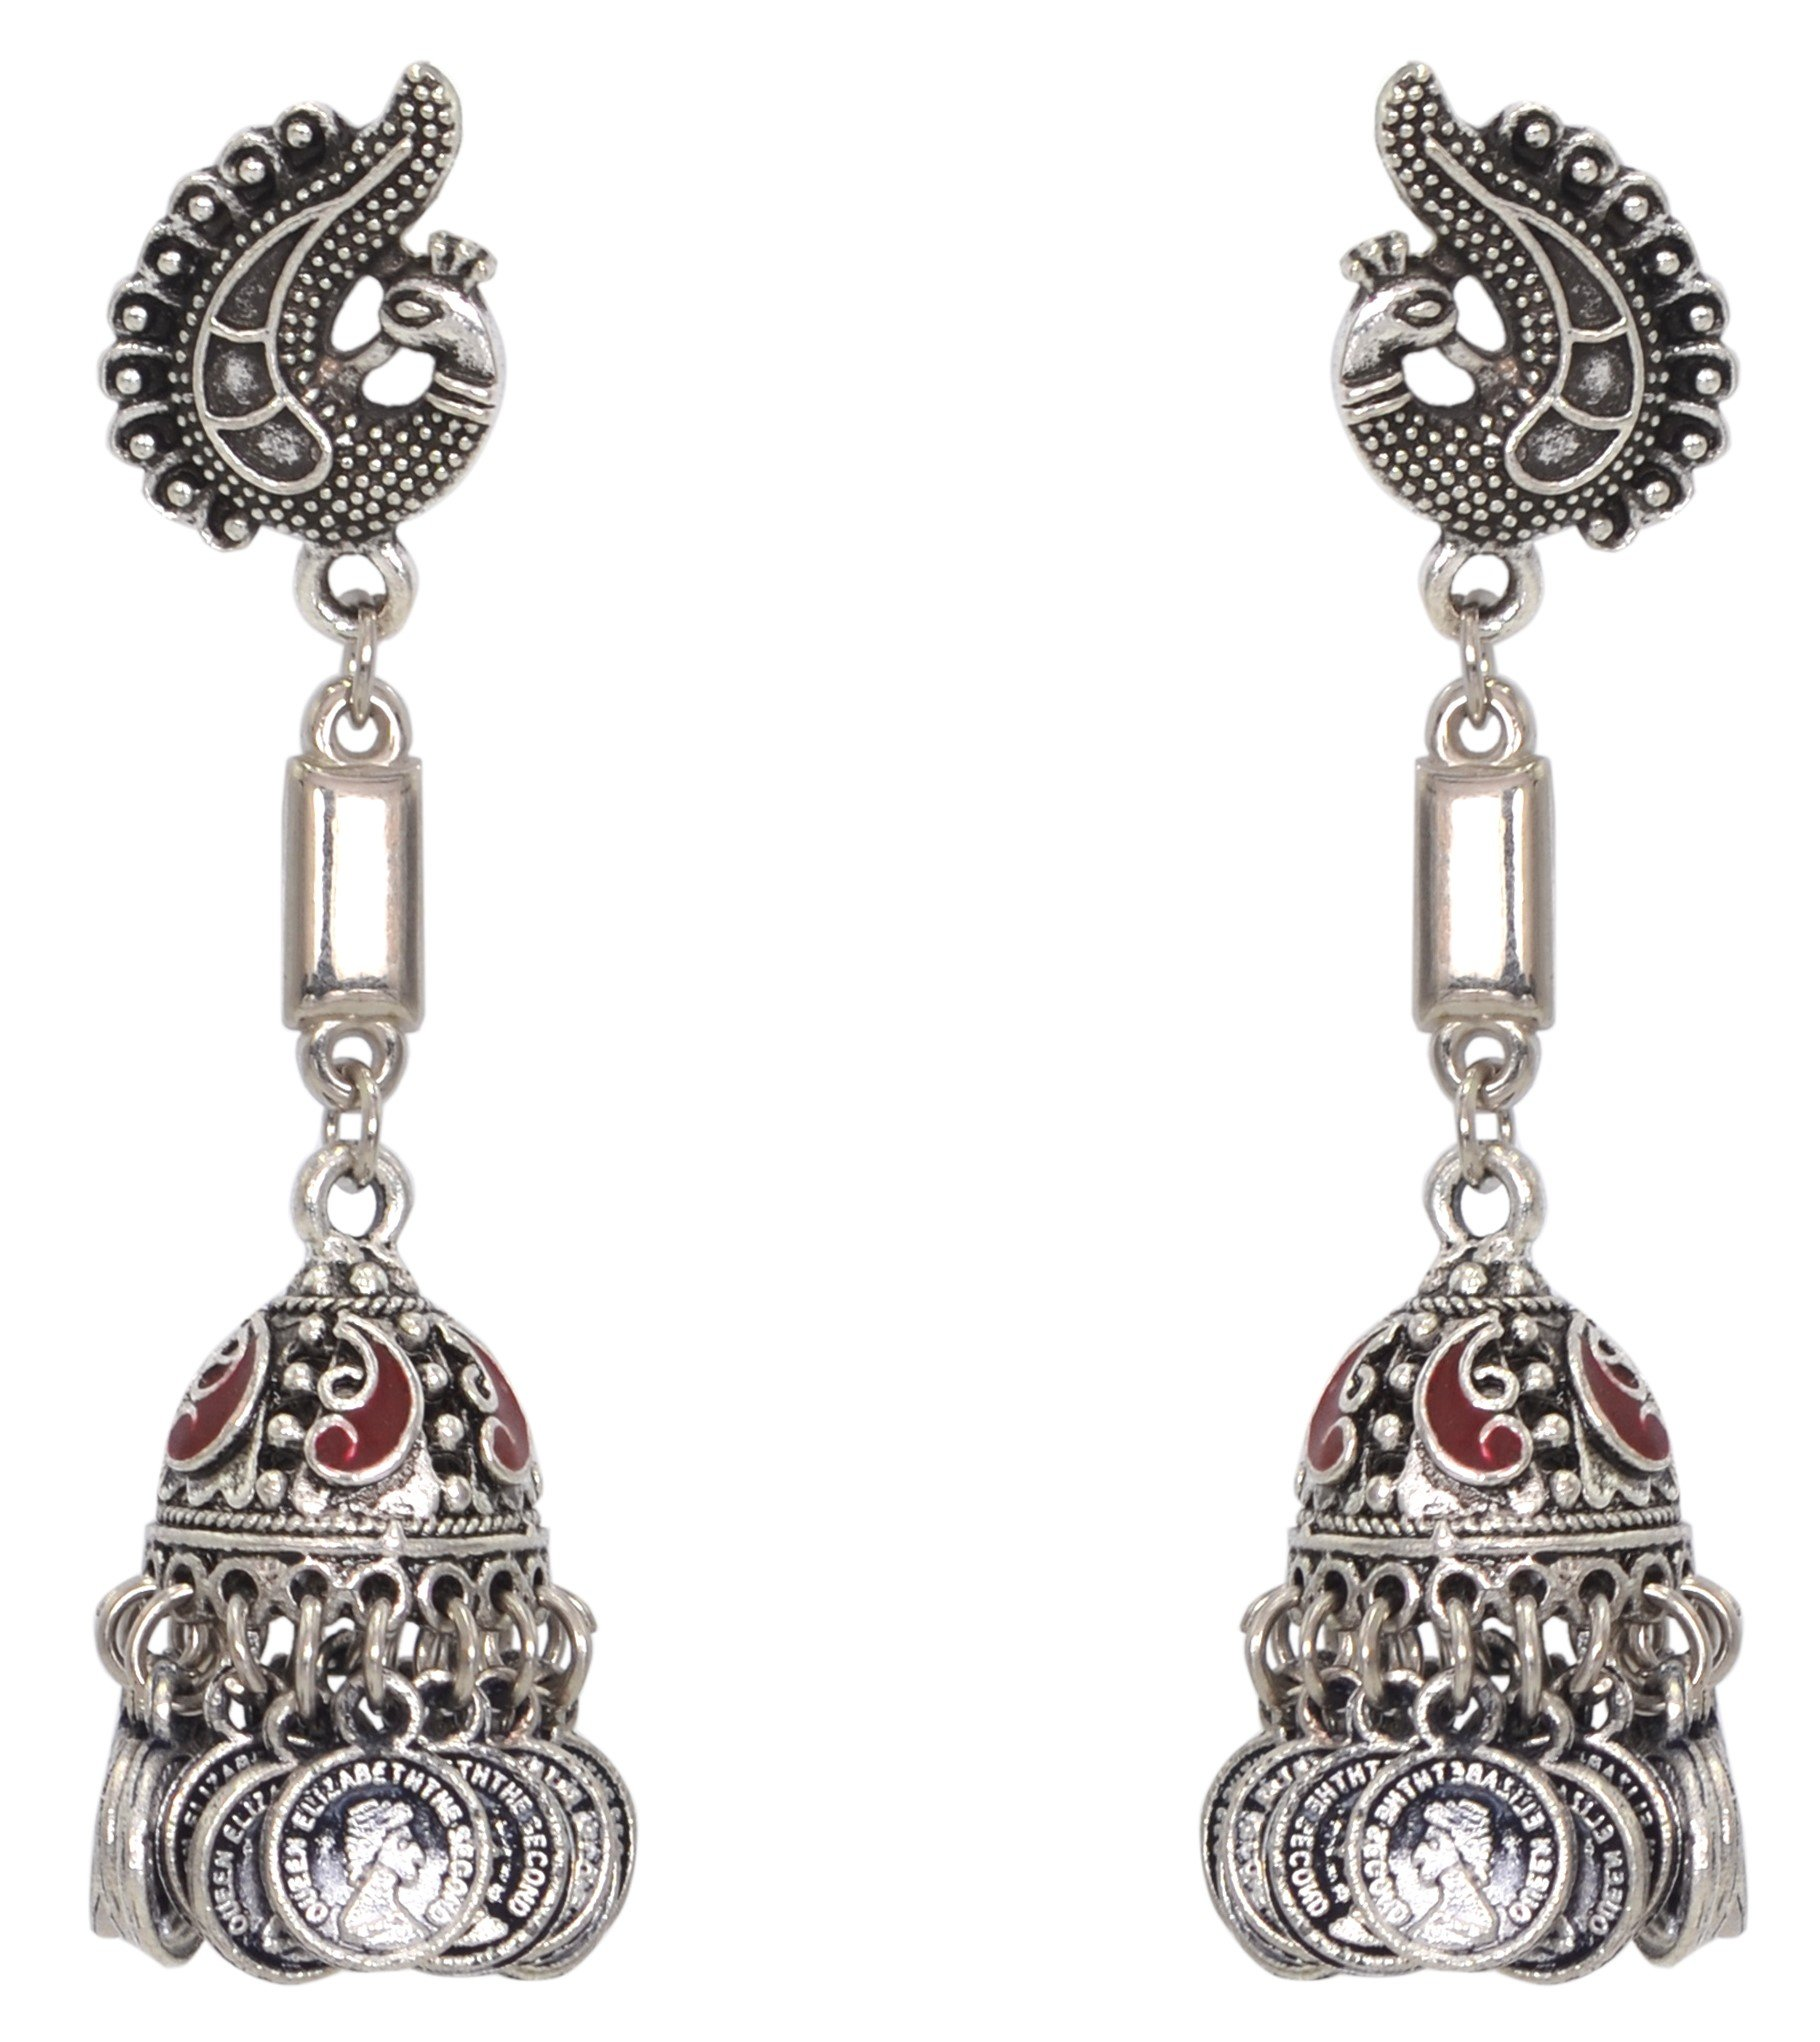 Sansar India Oxidized Stud Long Jhumka Indian Earrings Jewelry for Girls and Women 1210